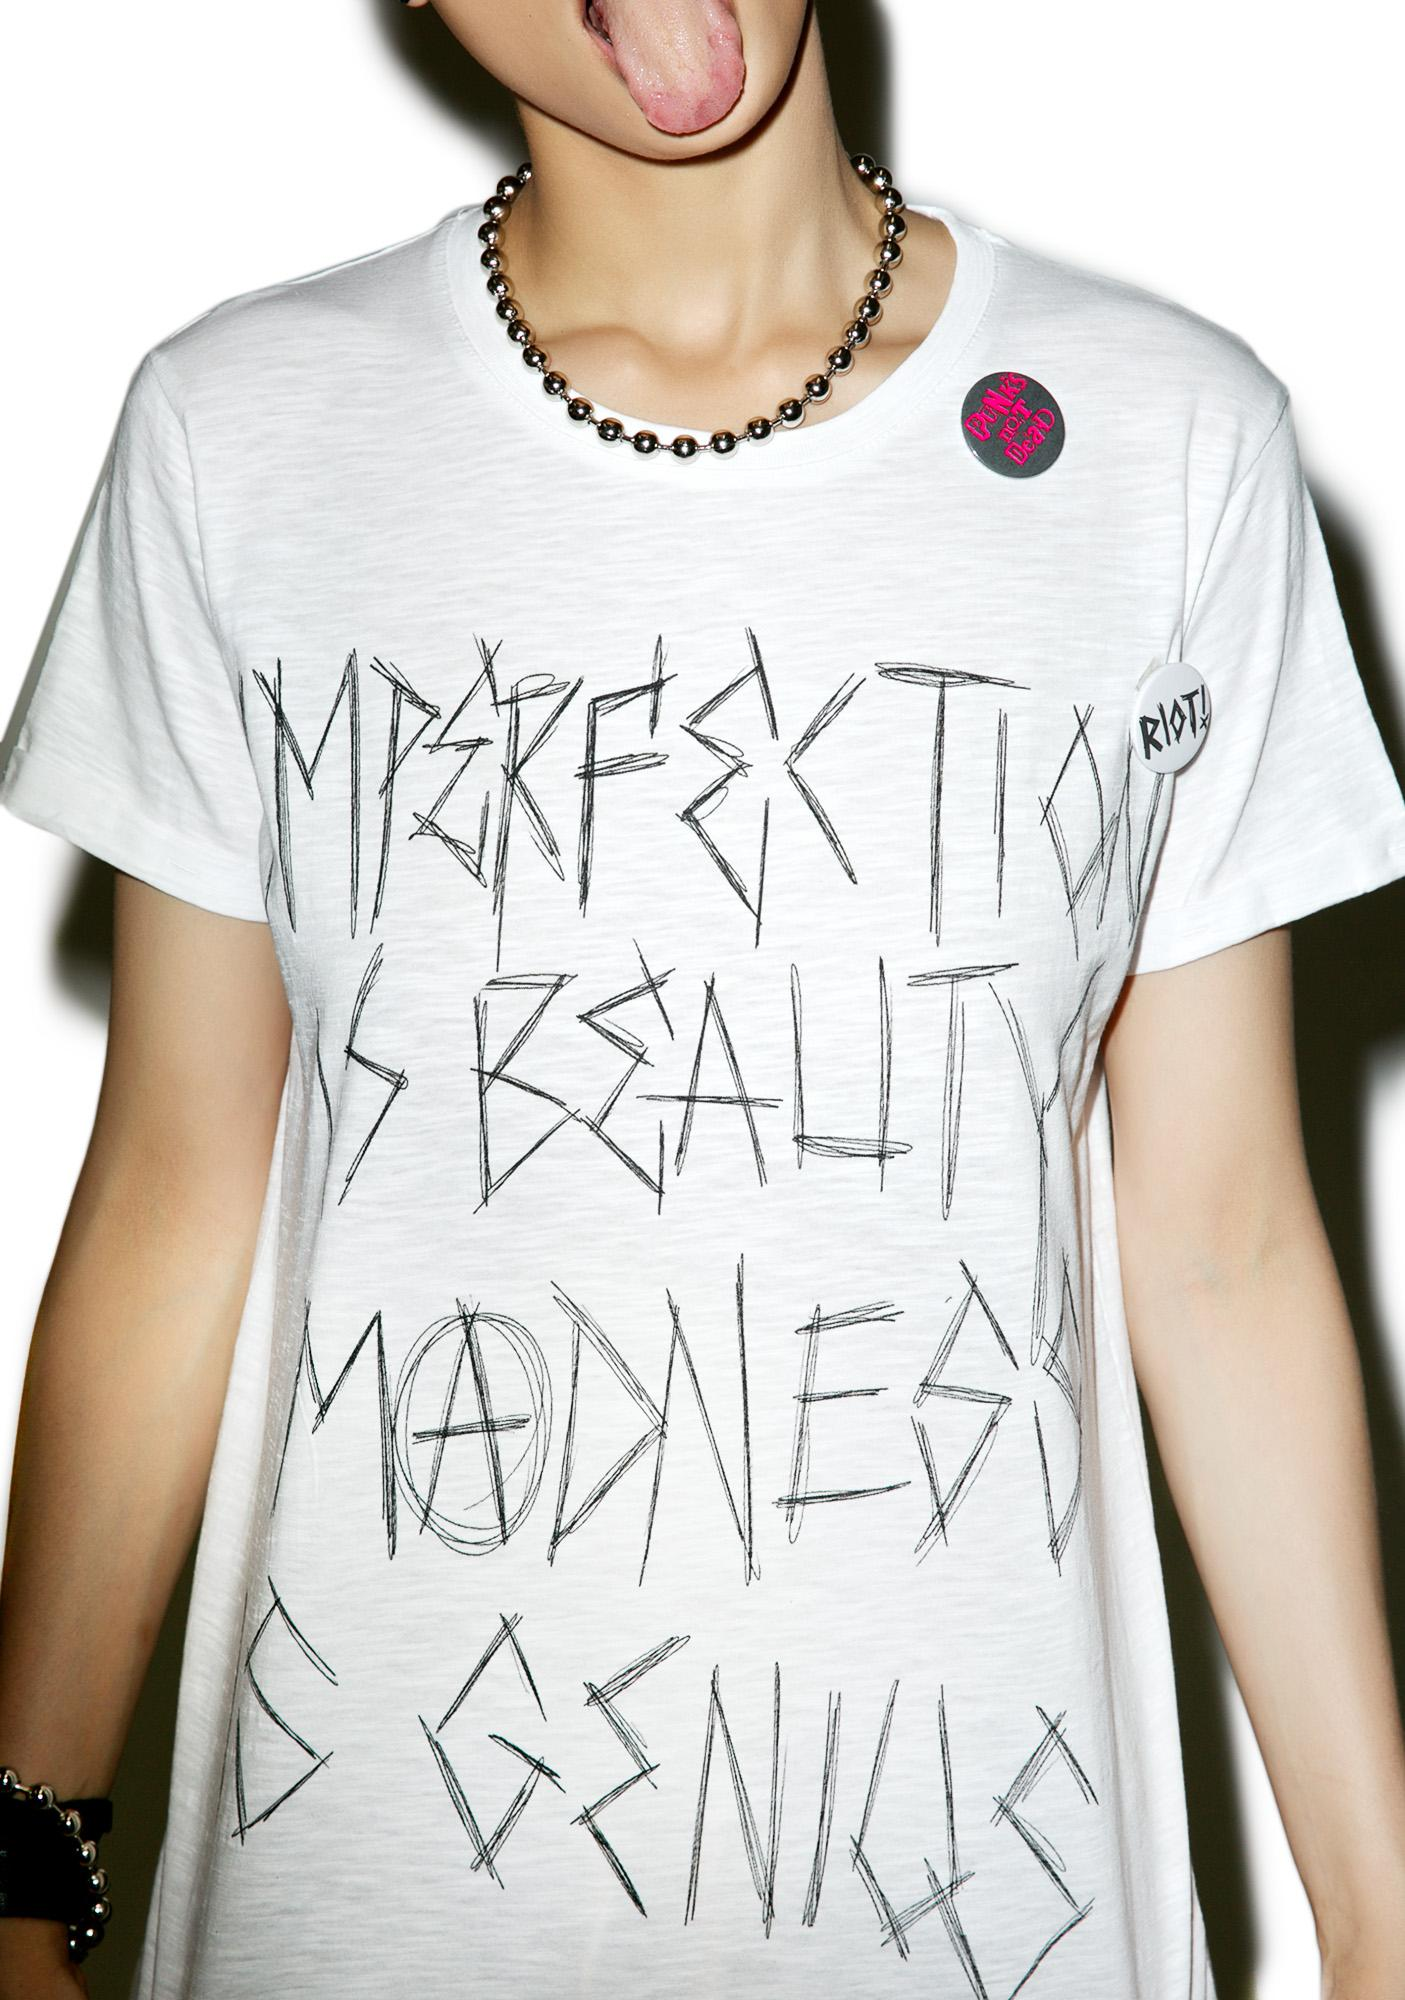 Happiness x Hanna Beth Imperfection Tee